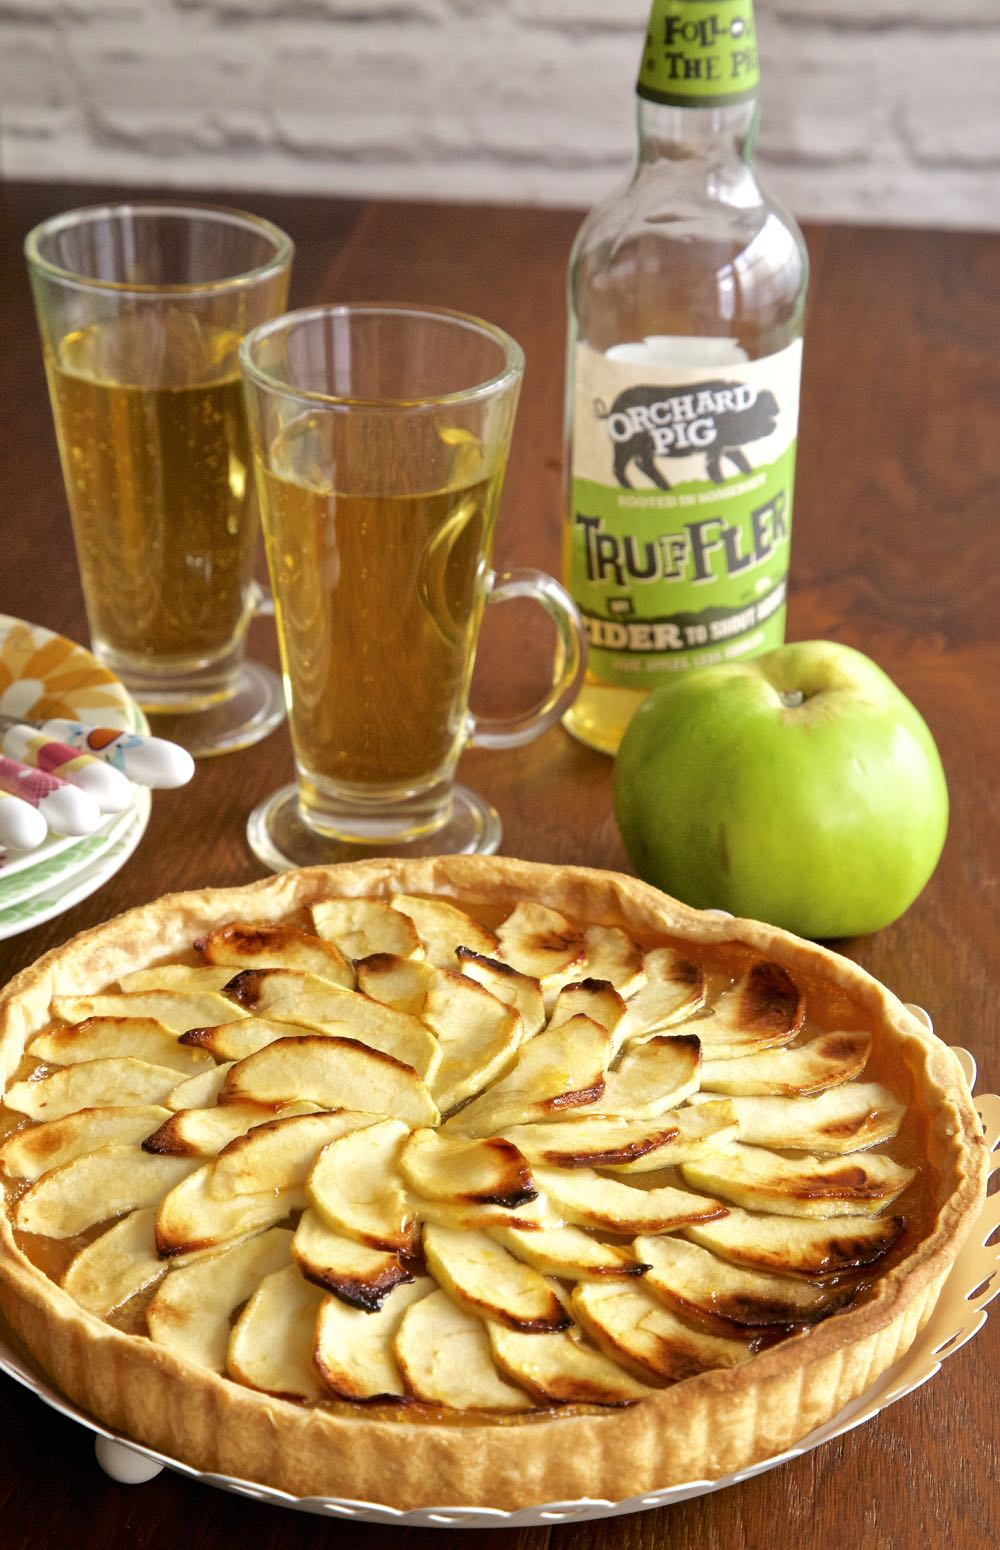 Rustic Cider and Apple Tart - A vegan apple tart recipe